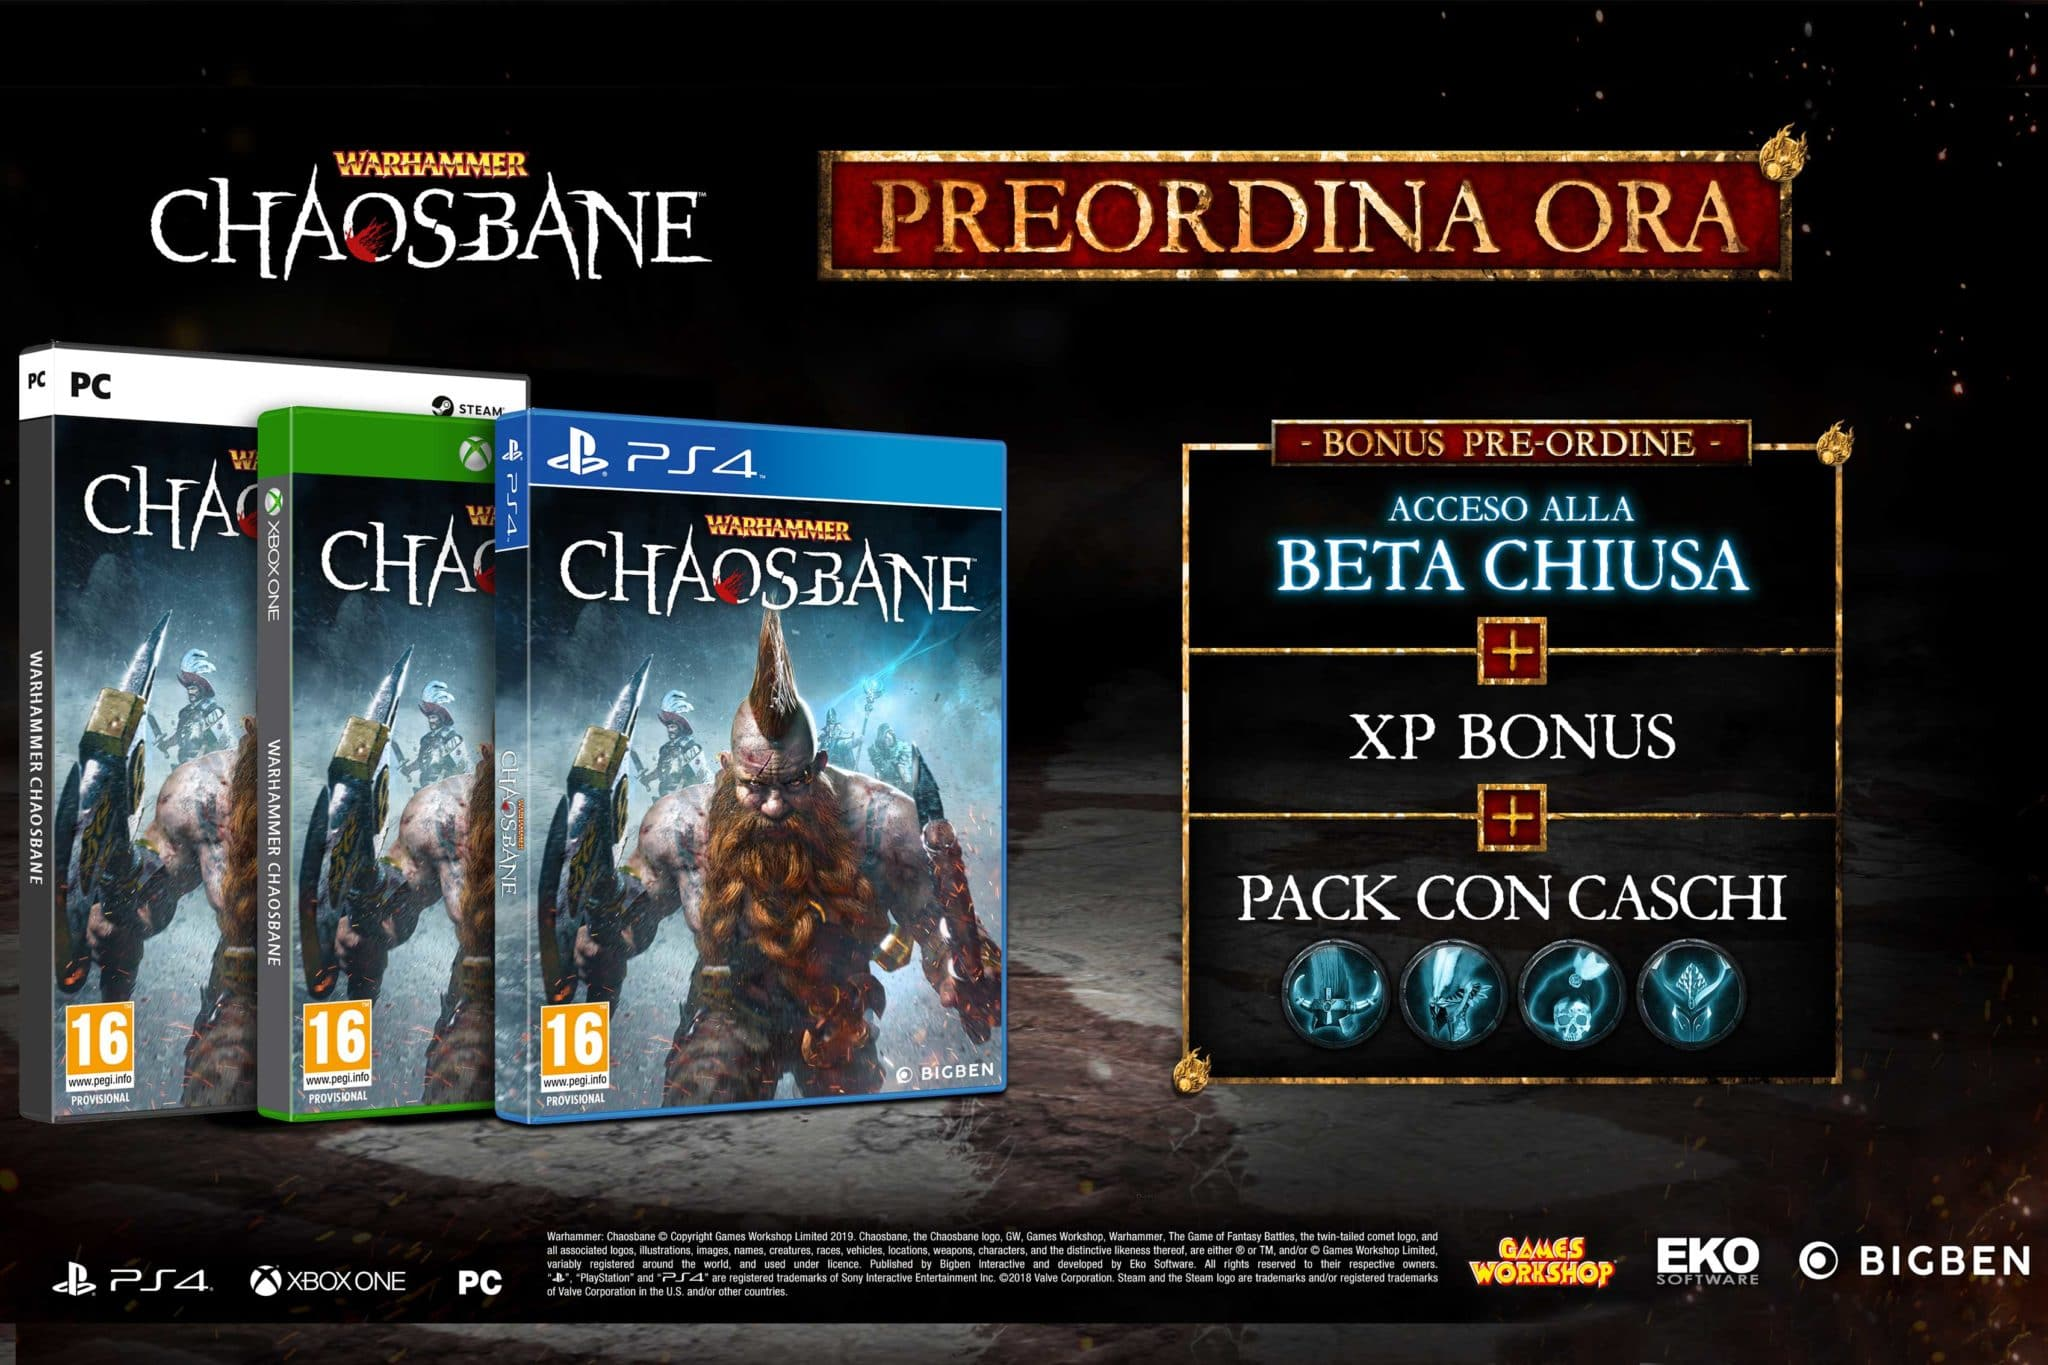 Ongame_franchising_videogames_WARHAMMER_CHAOSBANE (3)